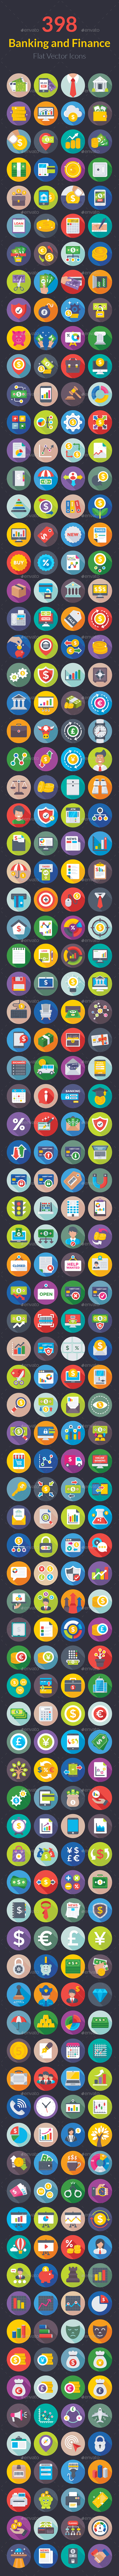 398 Banking and Finance Flat Icons - Icons